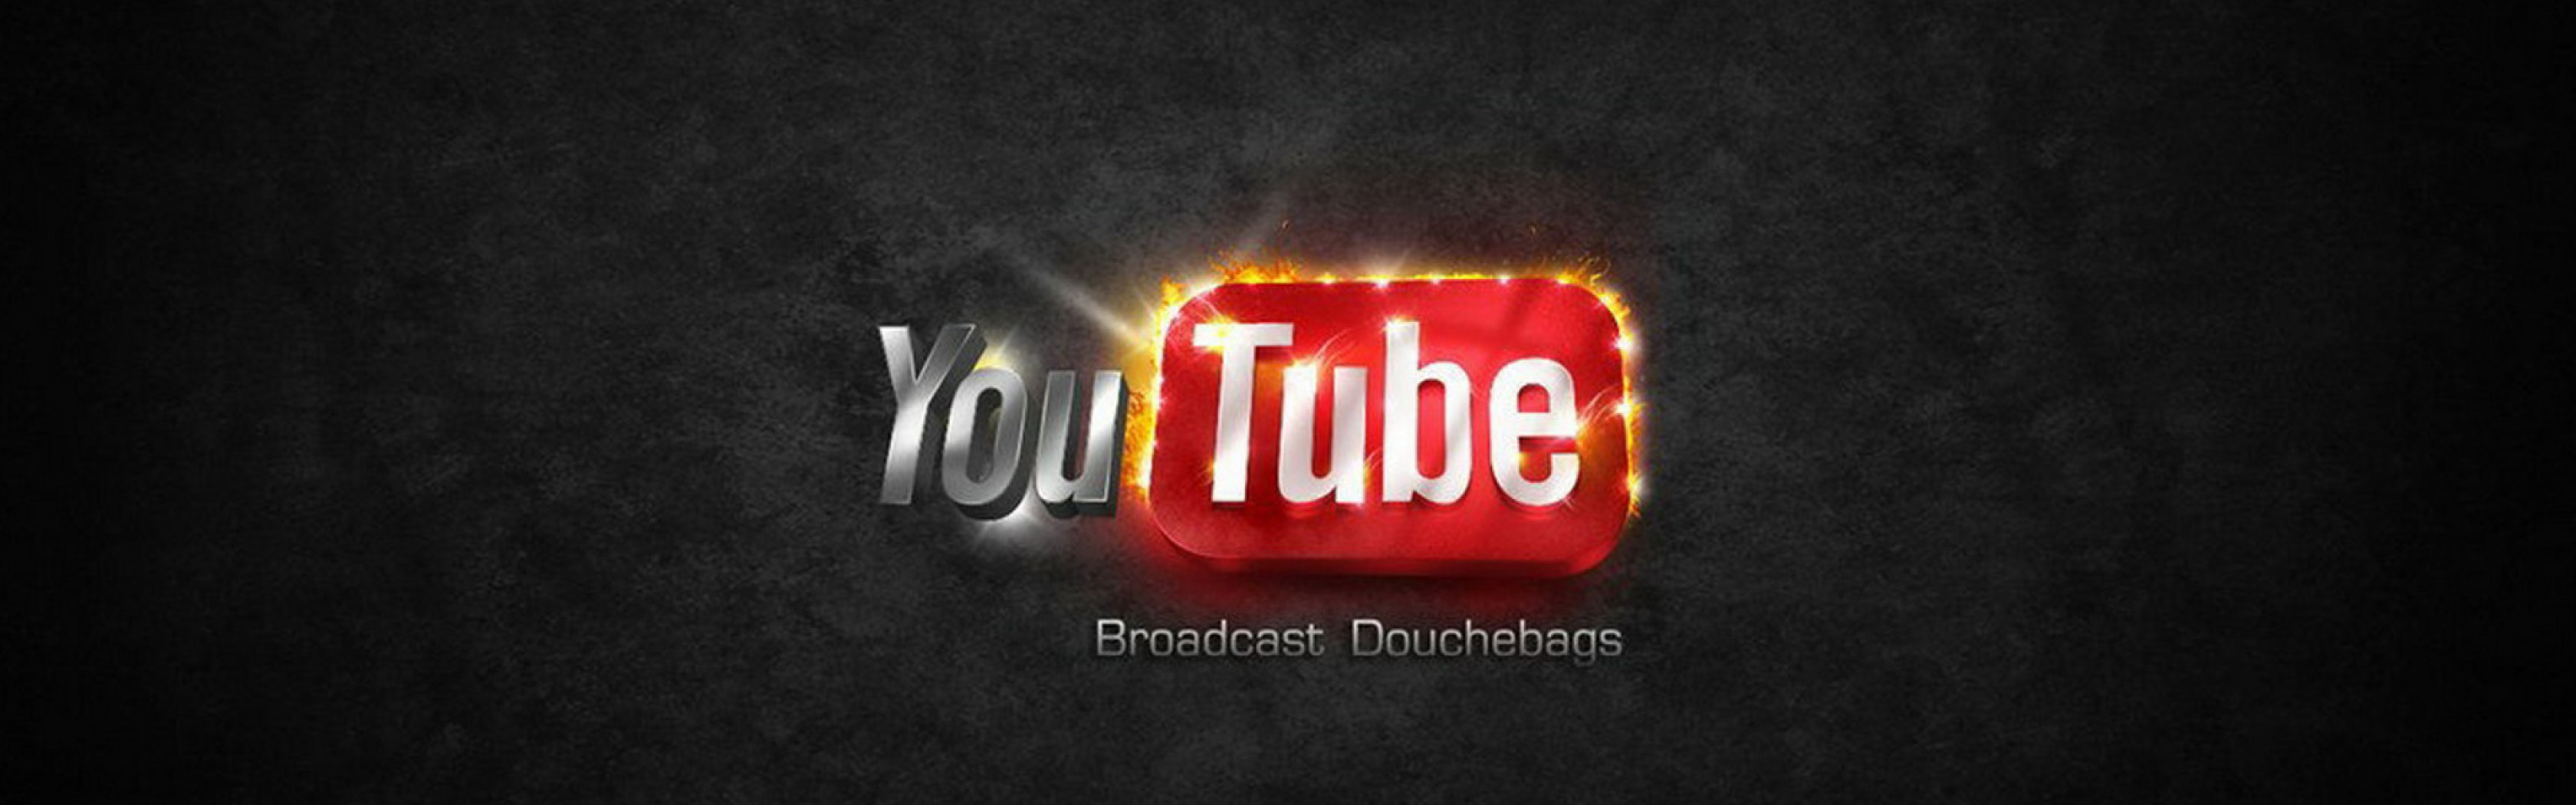 Youtube-logo-3